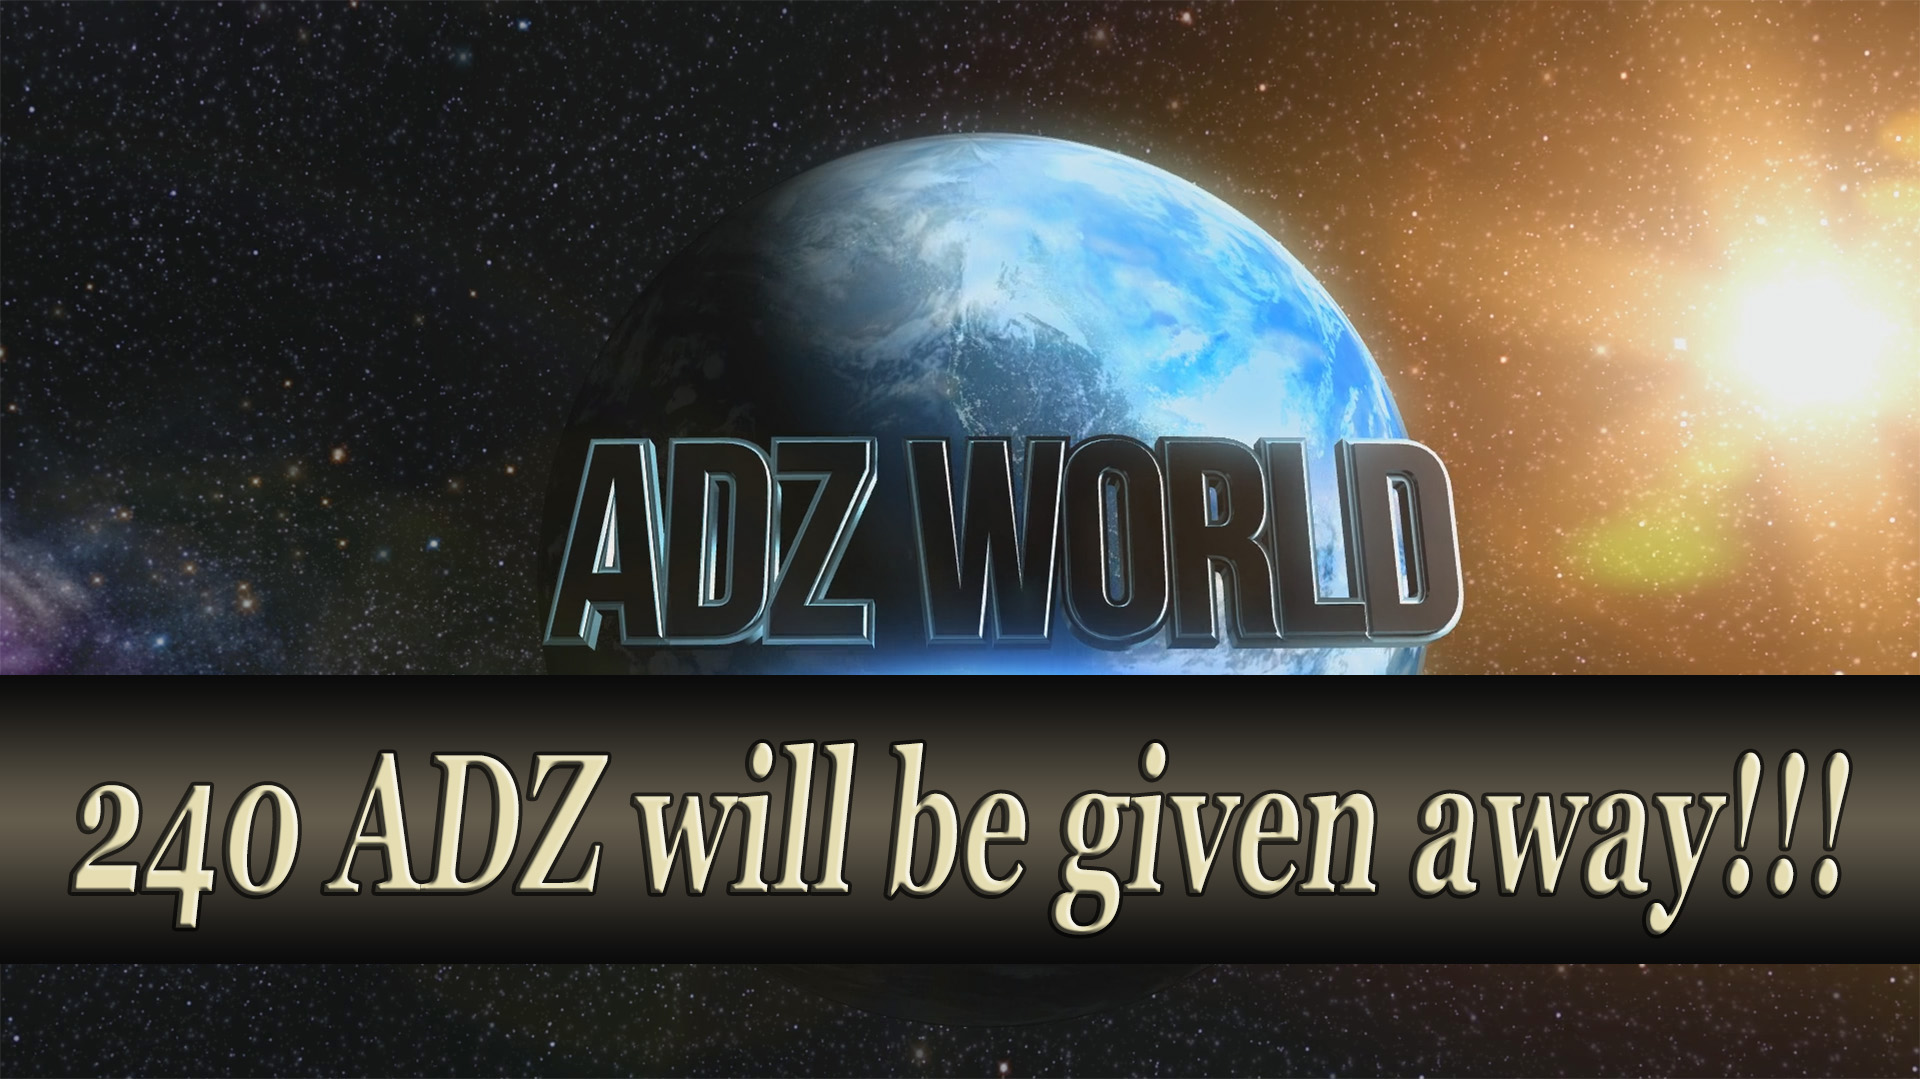 240 ADZ will be given away for FREE!